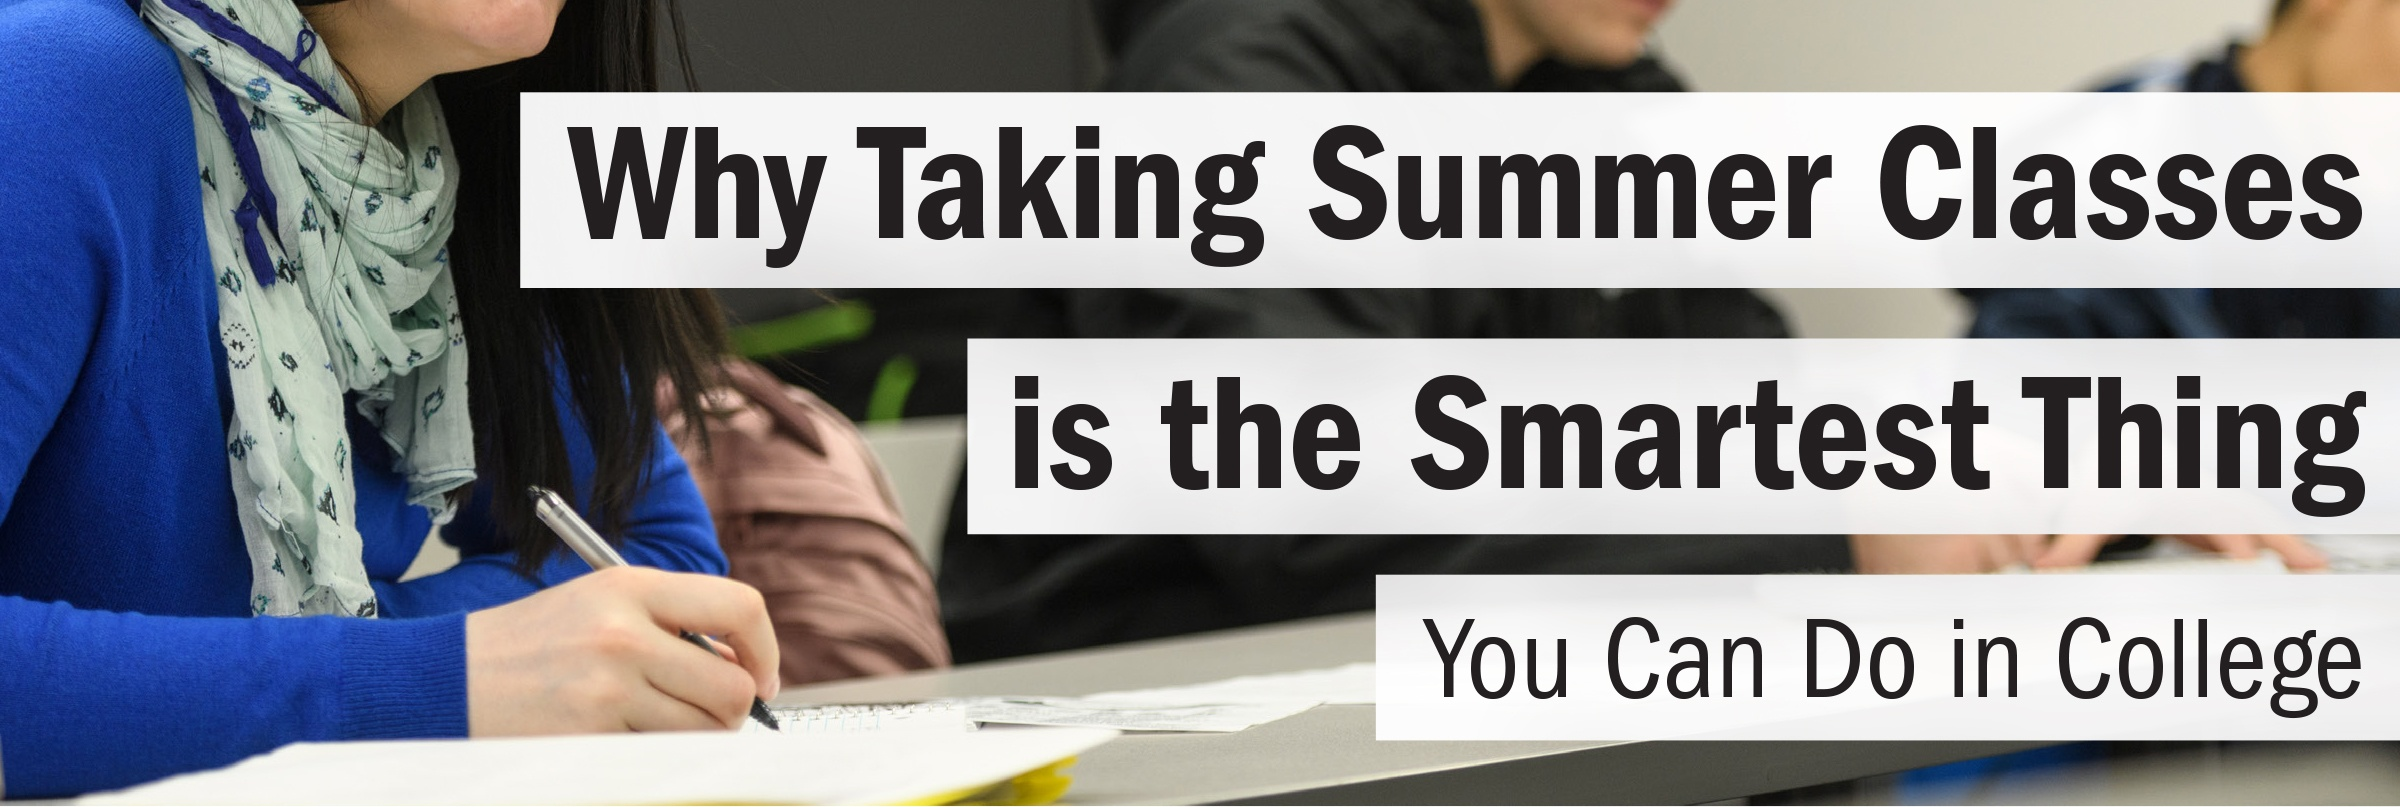 why taking summer classes is the smartest thing you can do in college jjc joliet junior college